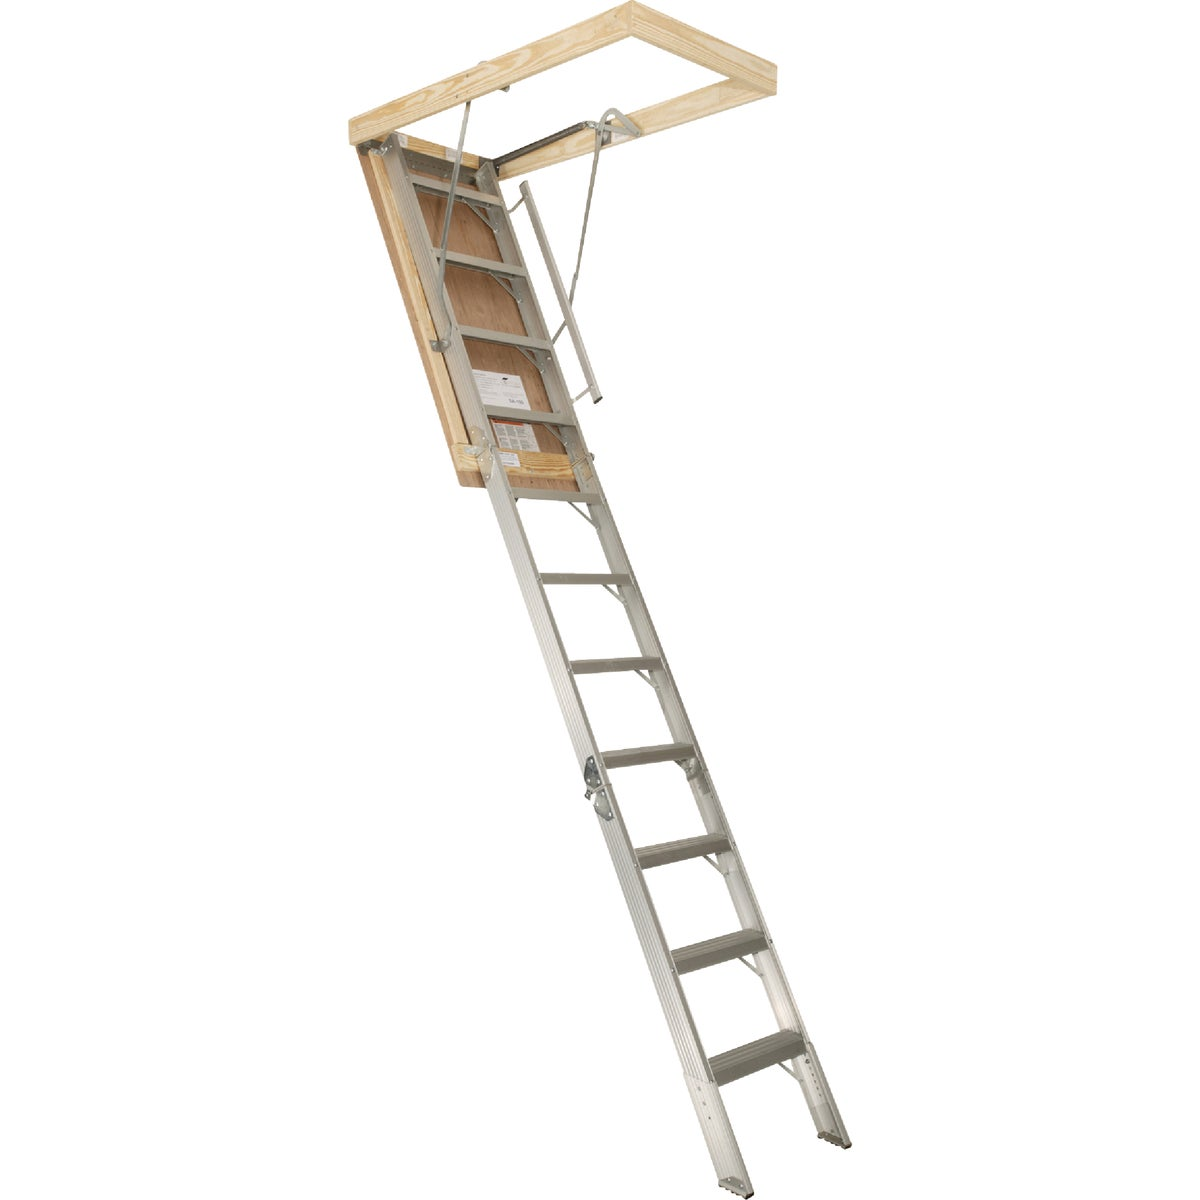 25X120 SUPRE ATTIC STAIR - SA100 by Century Stairs